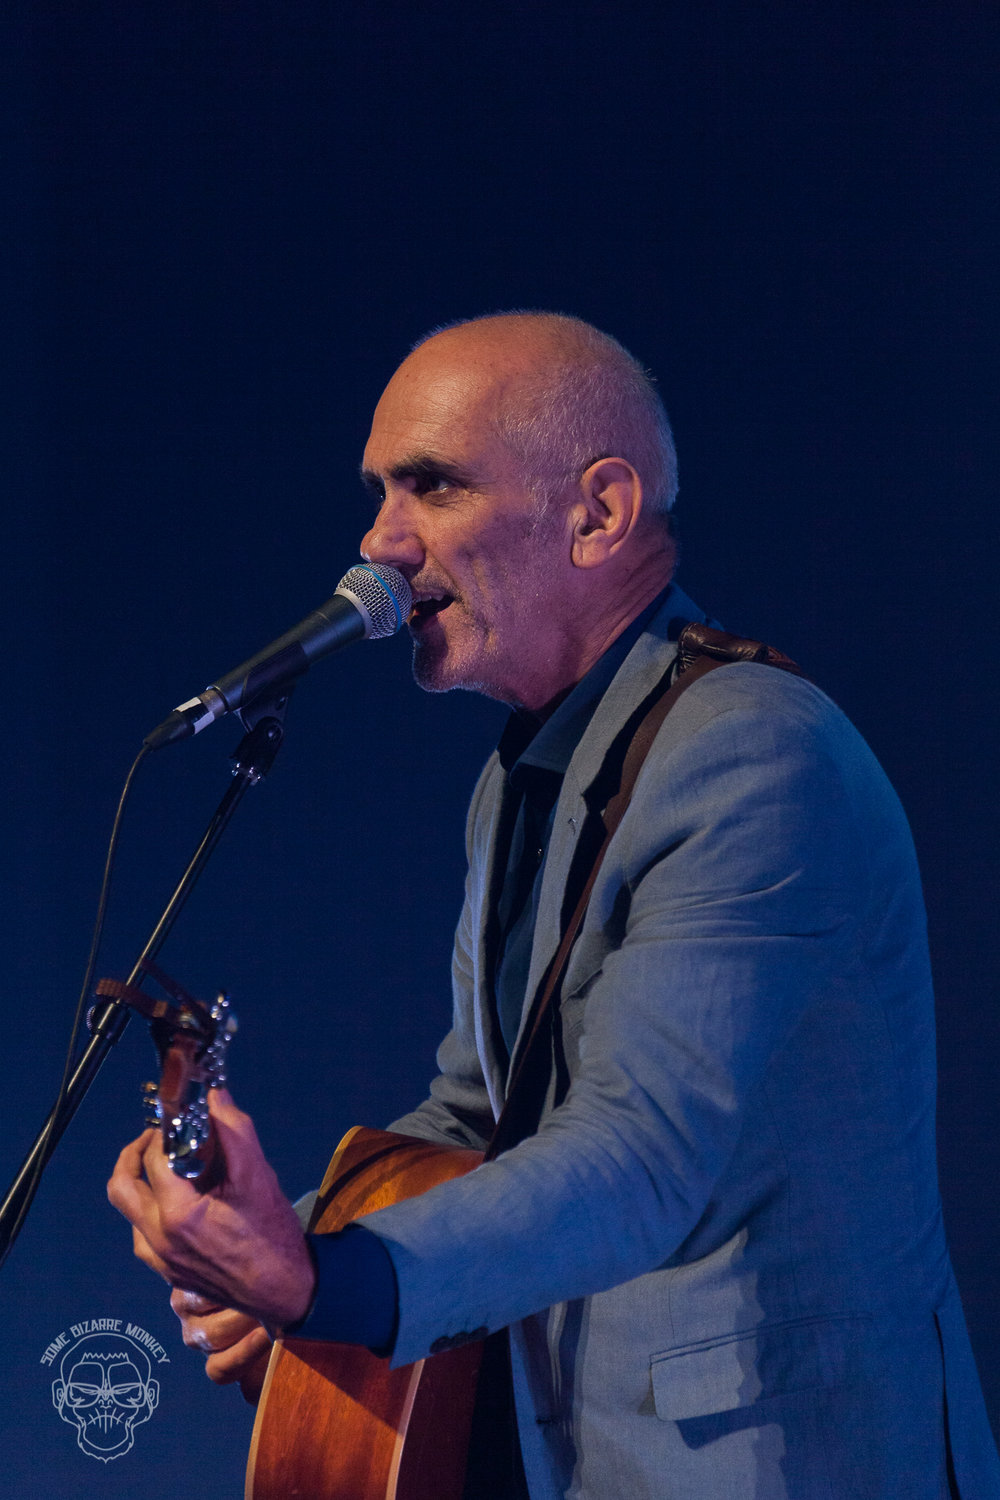 PaulKelly_Civic-1712.jpg